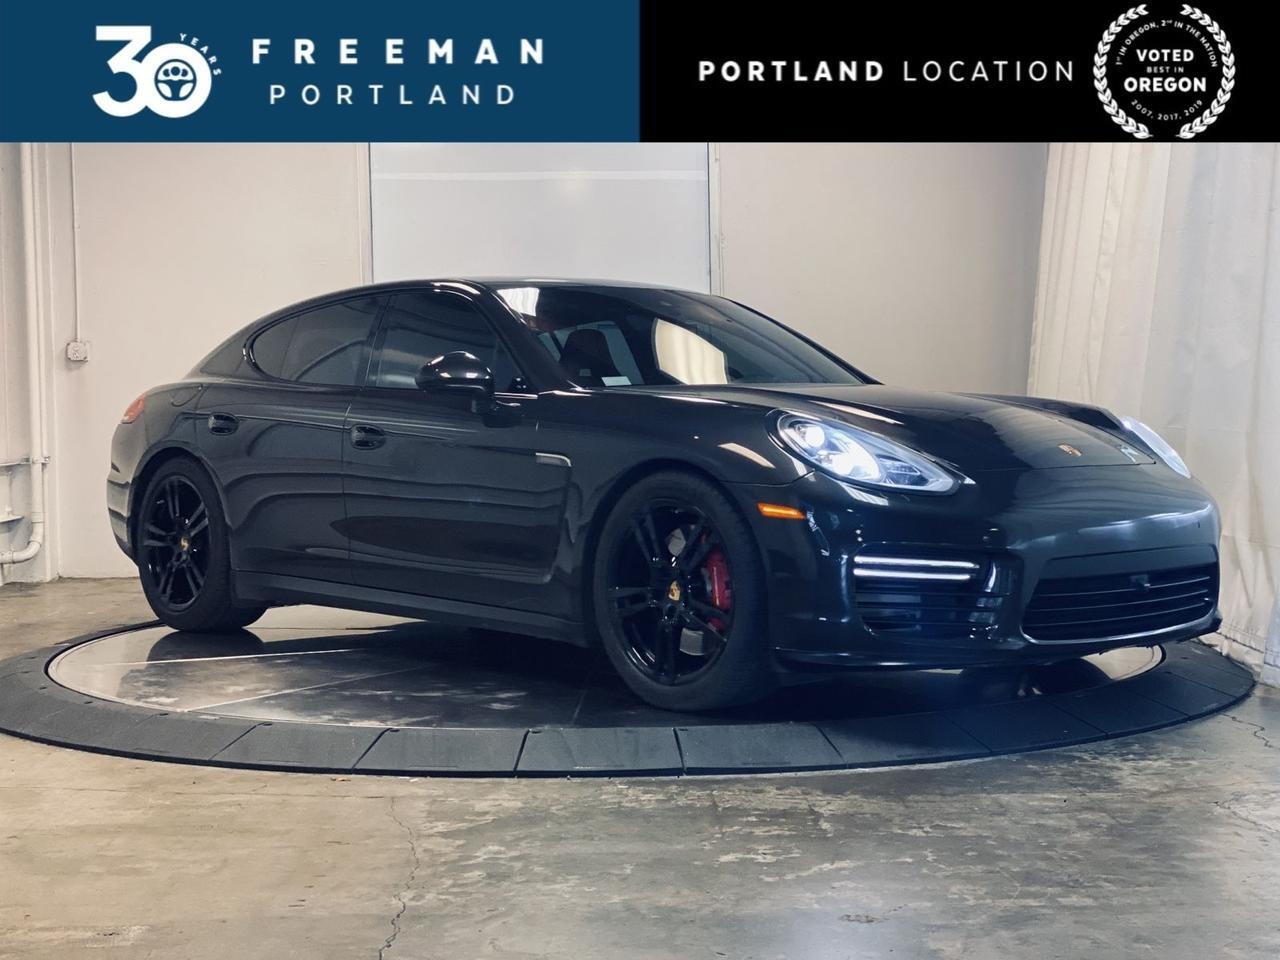 2014 Porsche Panamera GTS Red Interior Heated Seats Portland OR